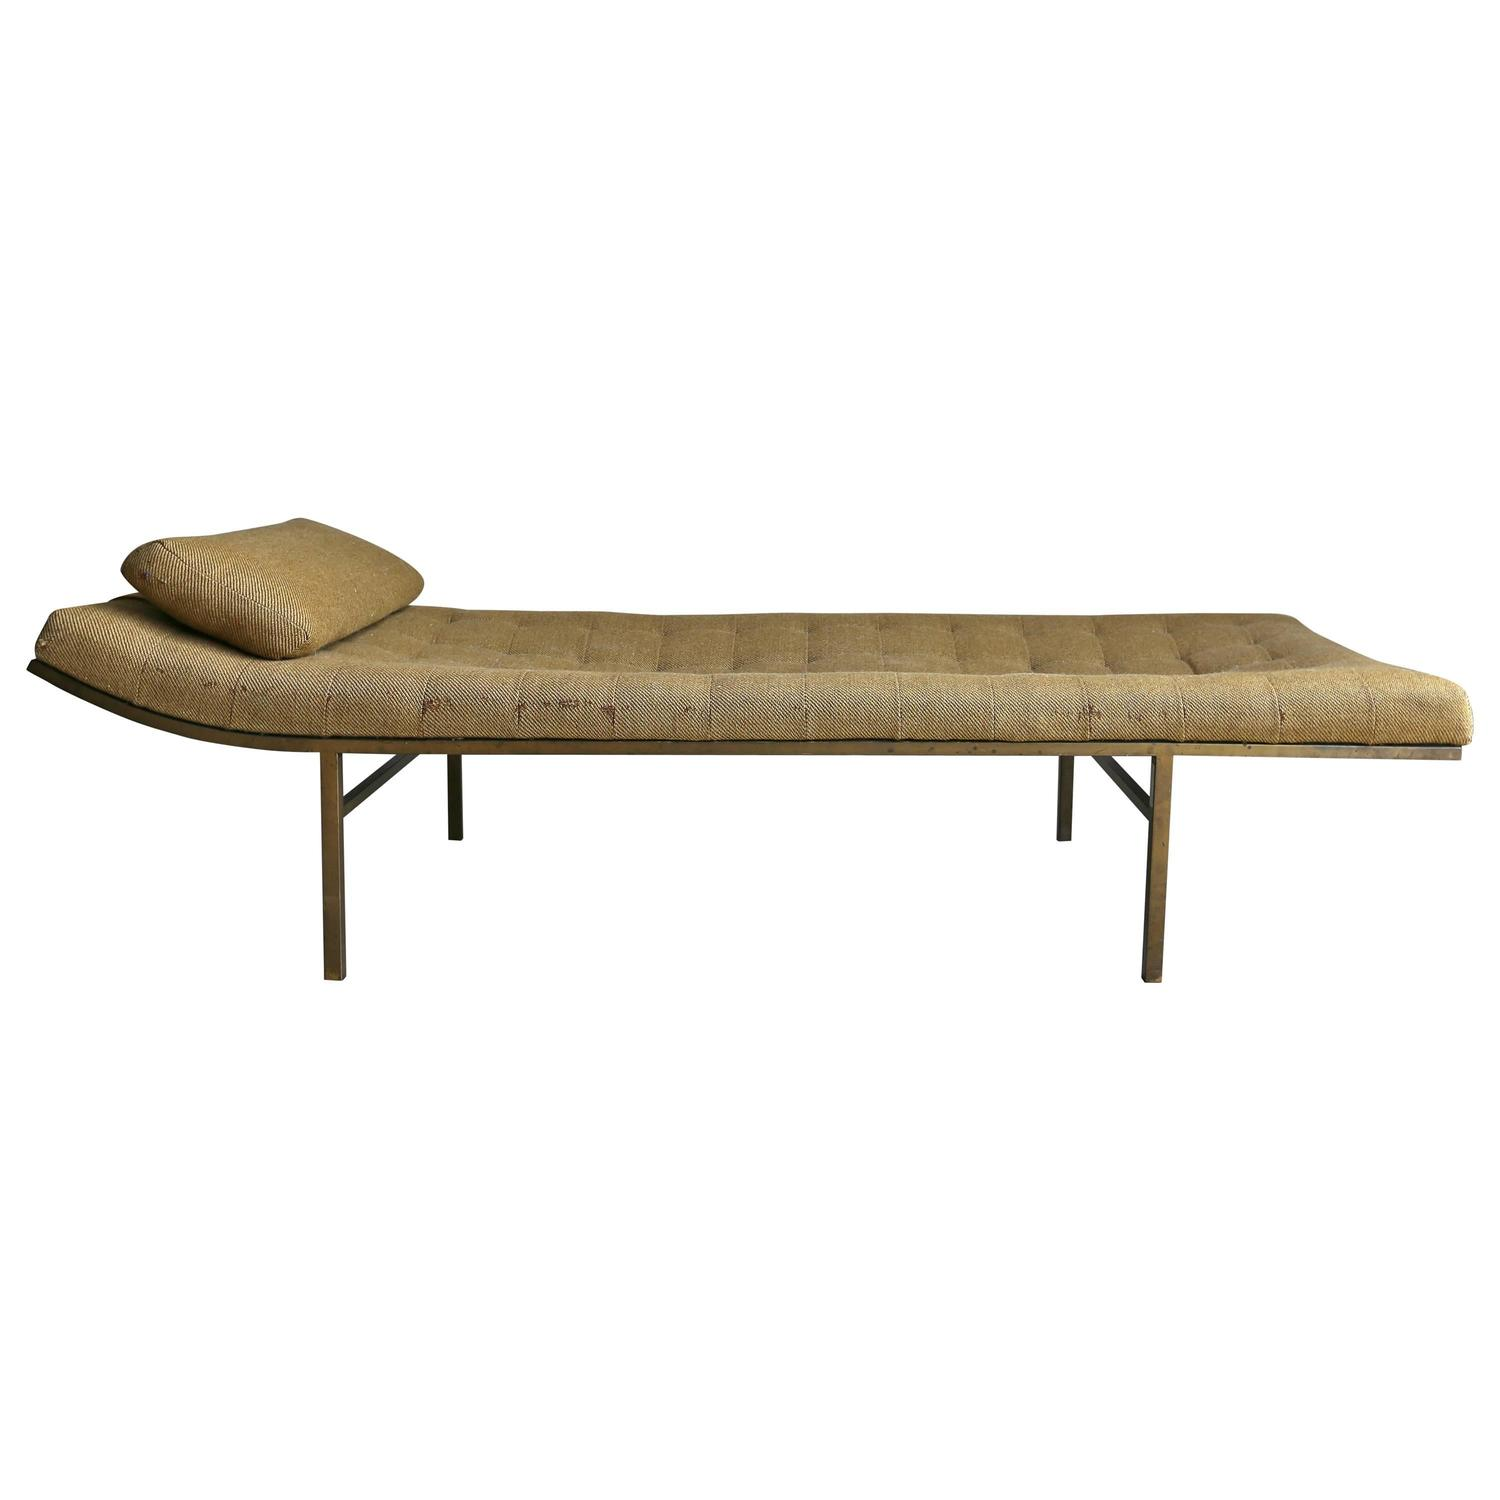 Chaise Lounge by Jules Heumann at 1stdibs